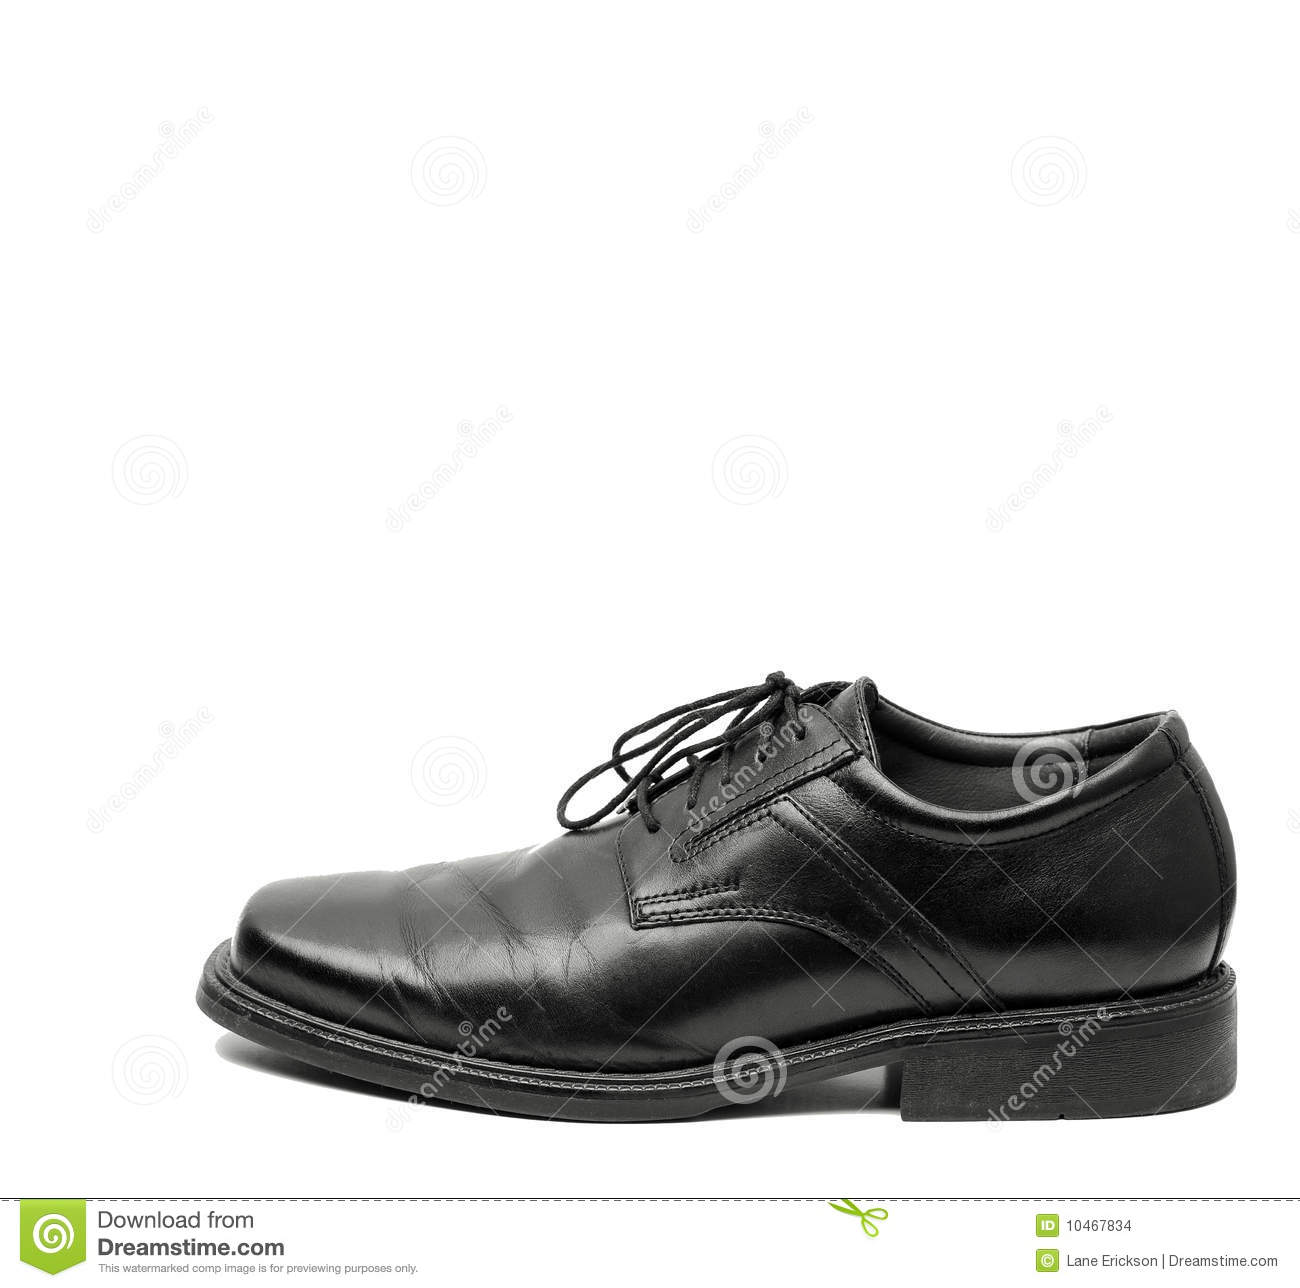 Men's black dress shoe isolated on white background